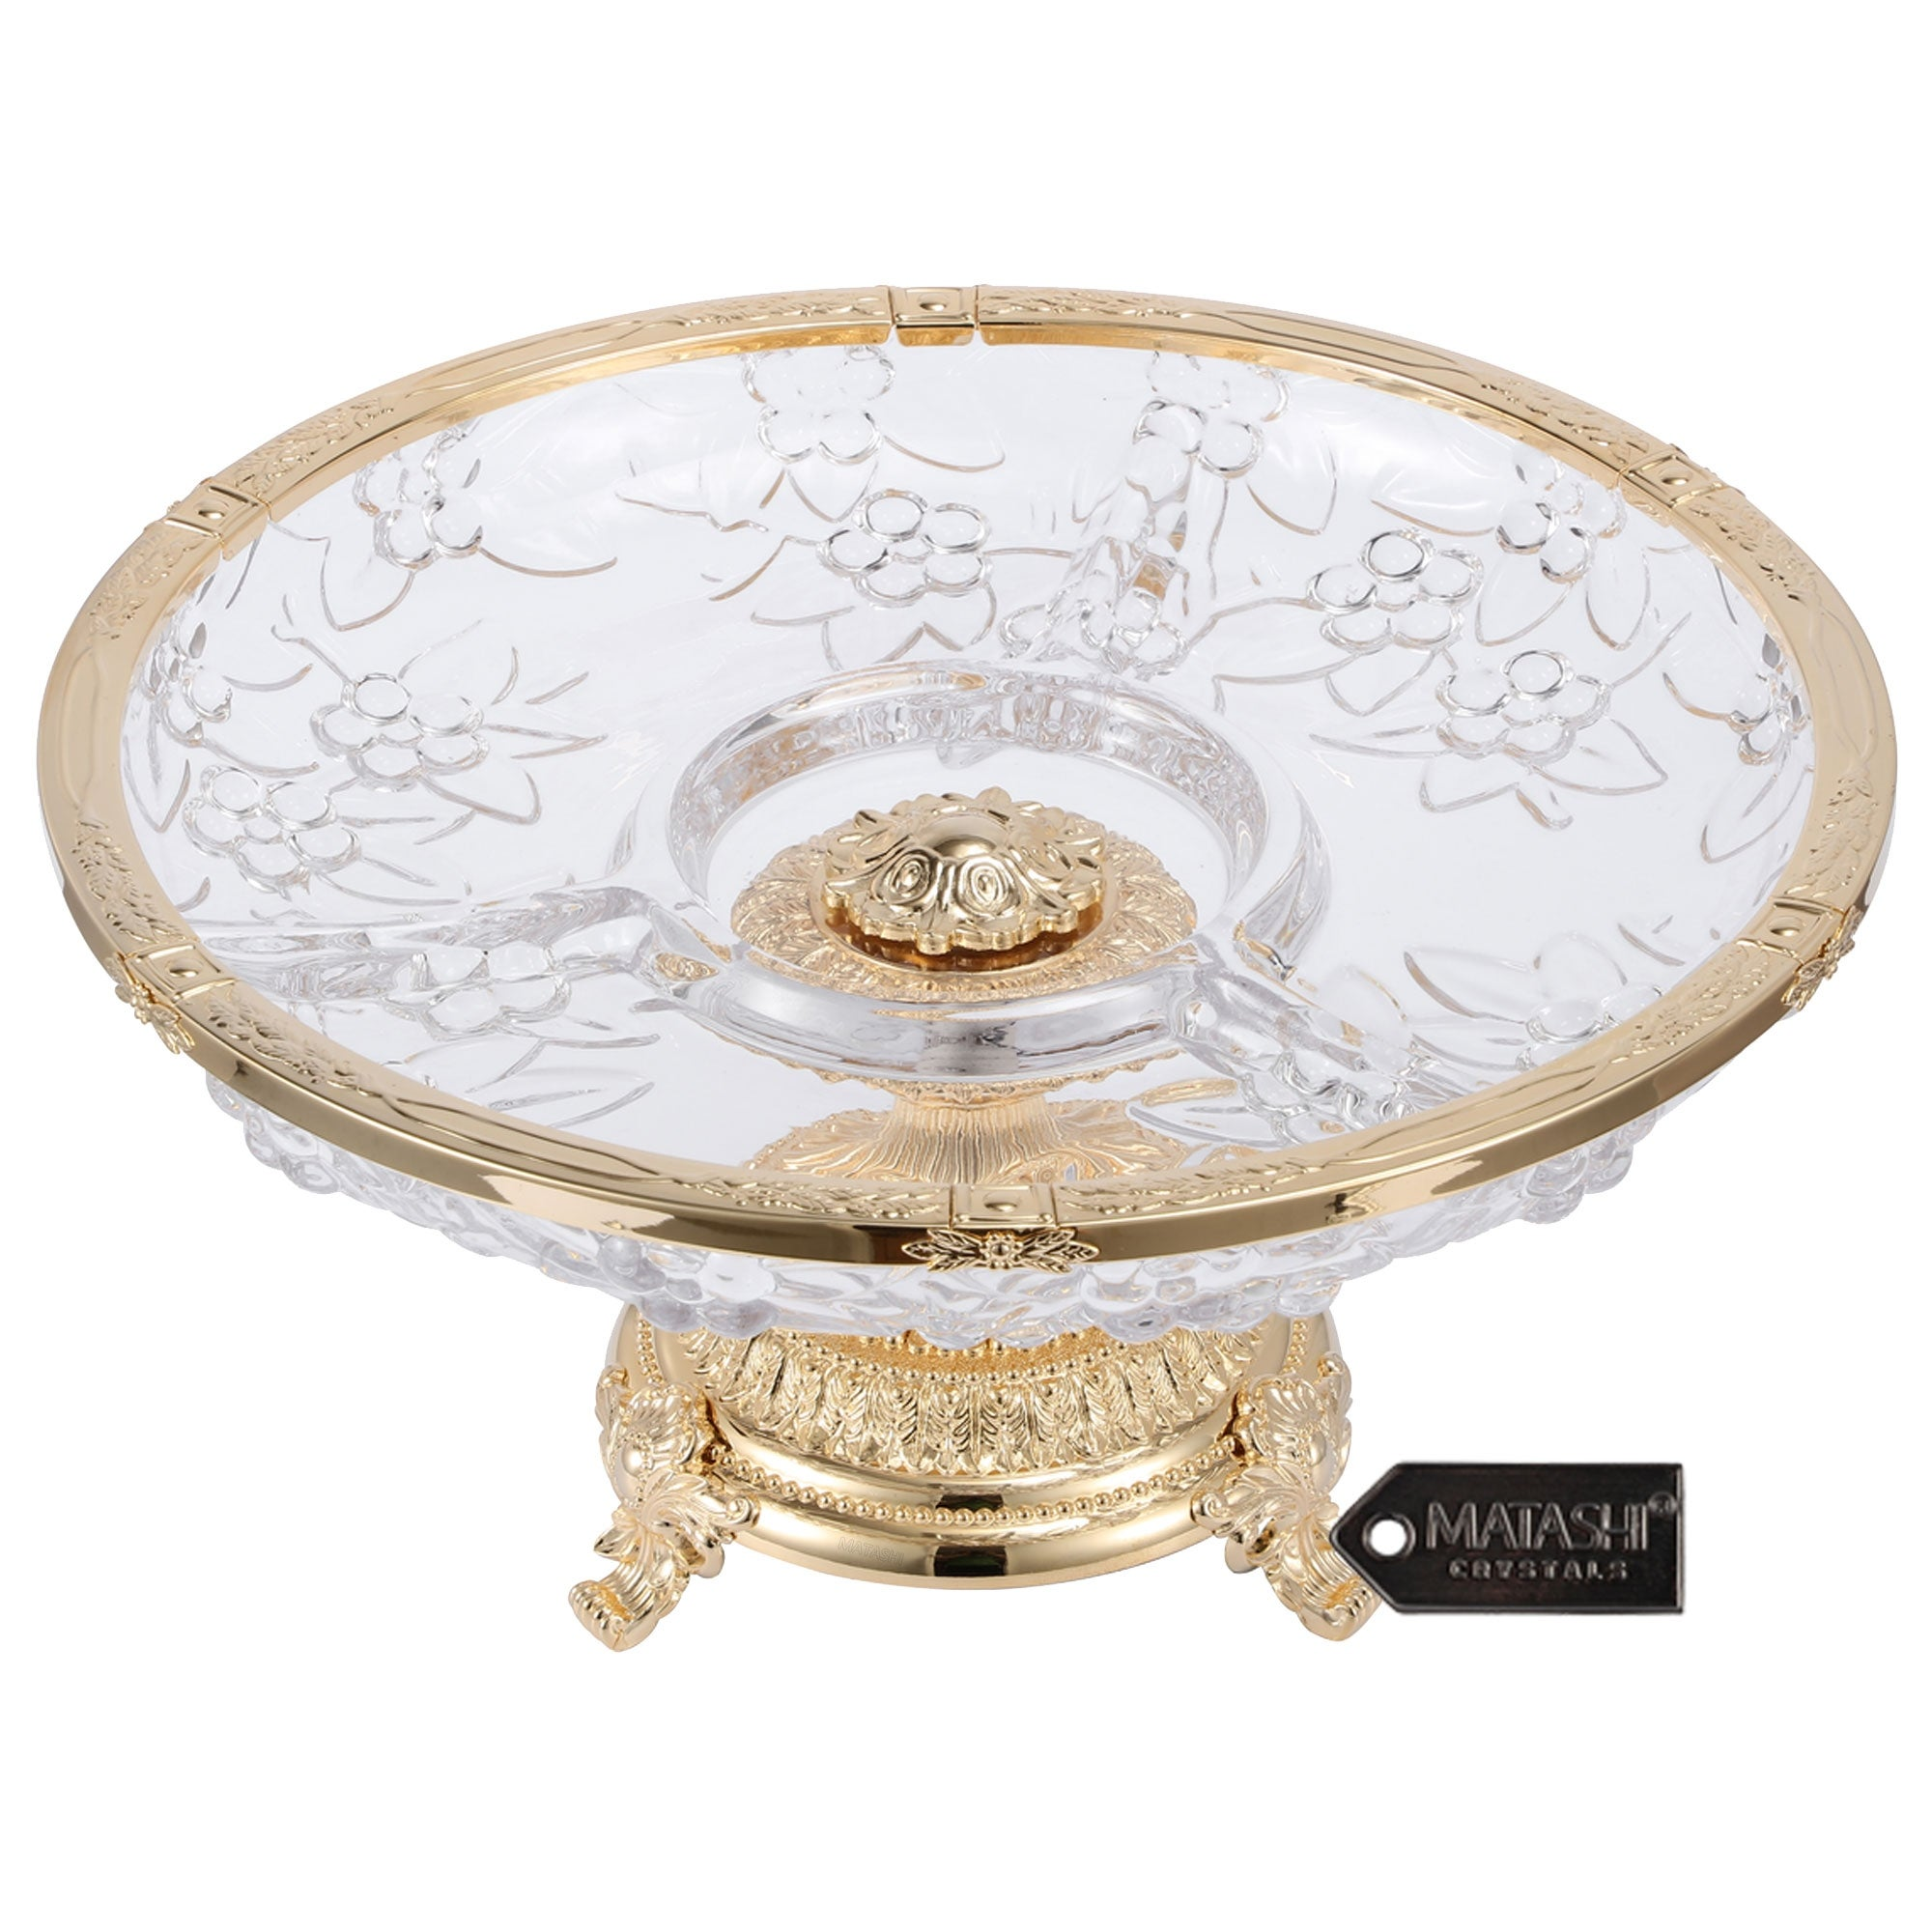 Matashi 3 Sectional Centerpiece Decorative Bowl Round Serving Platter W 24k Gold Plated Pedestal Base For Weddings Parties Overstock 32531033